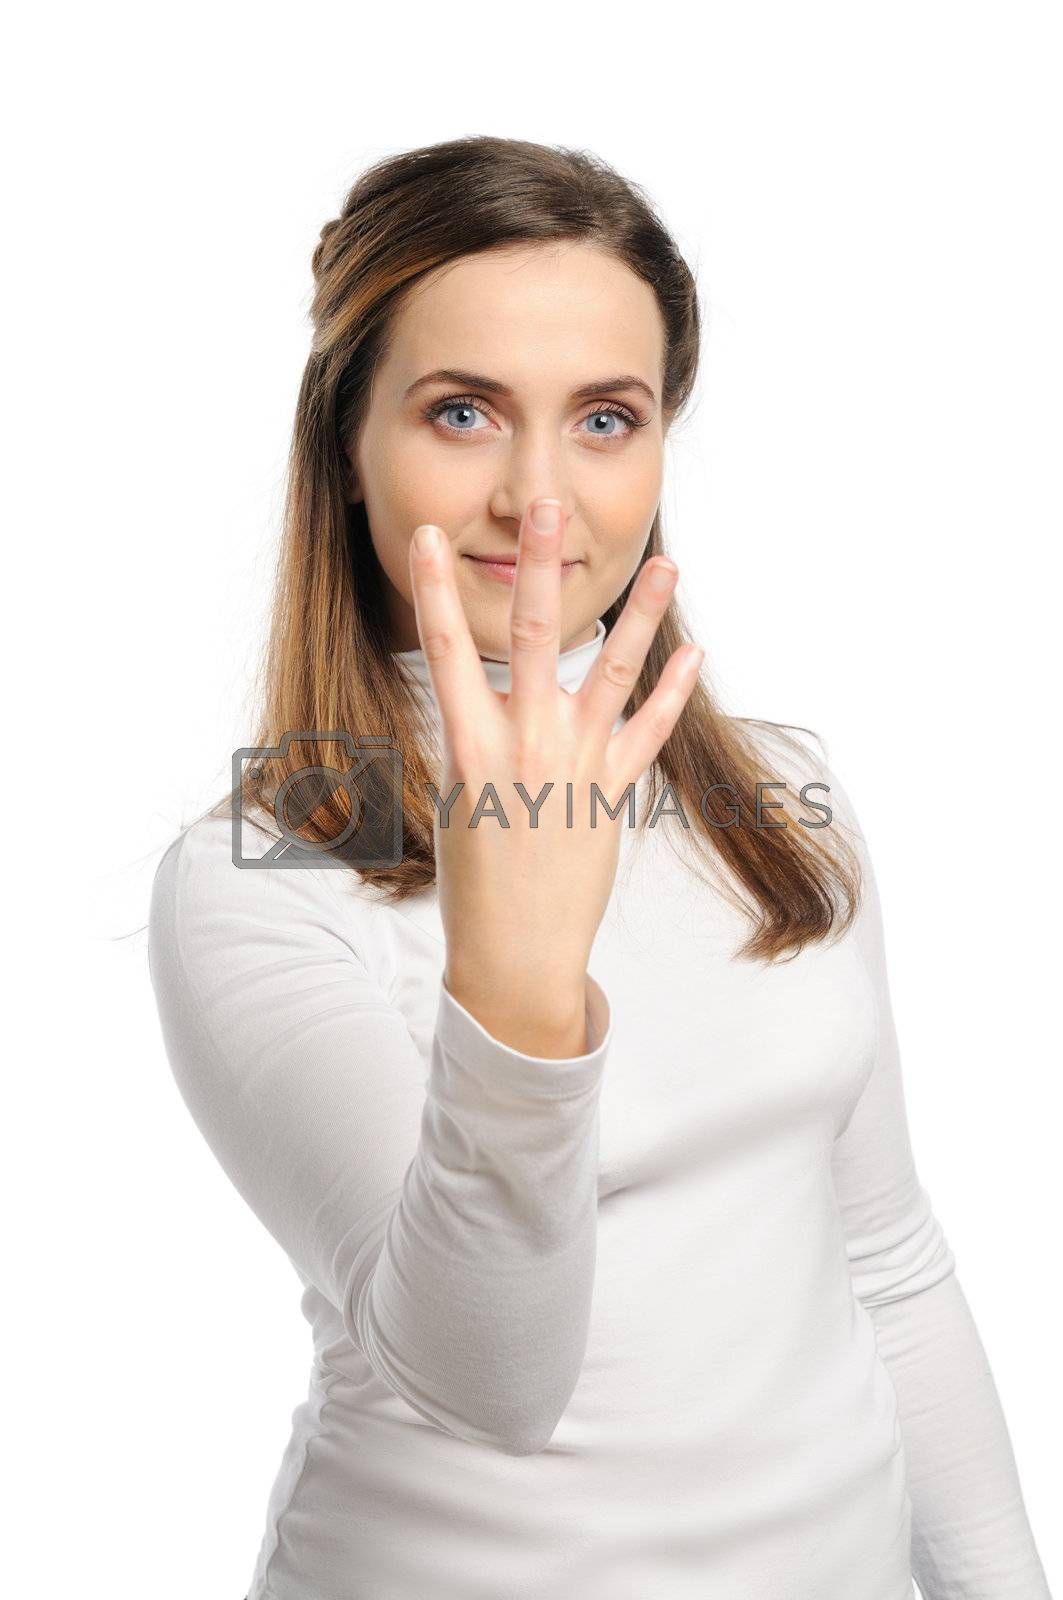 Young attractive girl shows gesture of the figure four. Isolated on white.